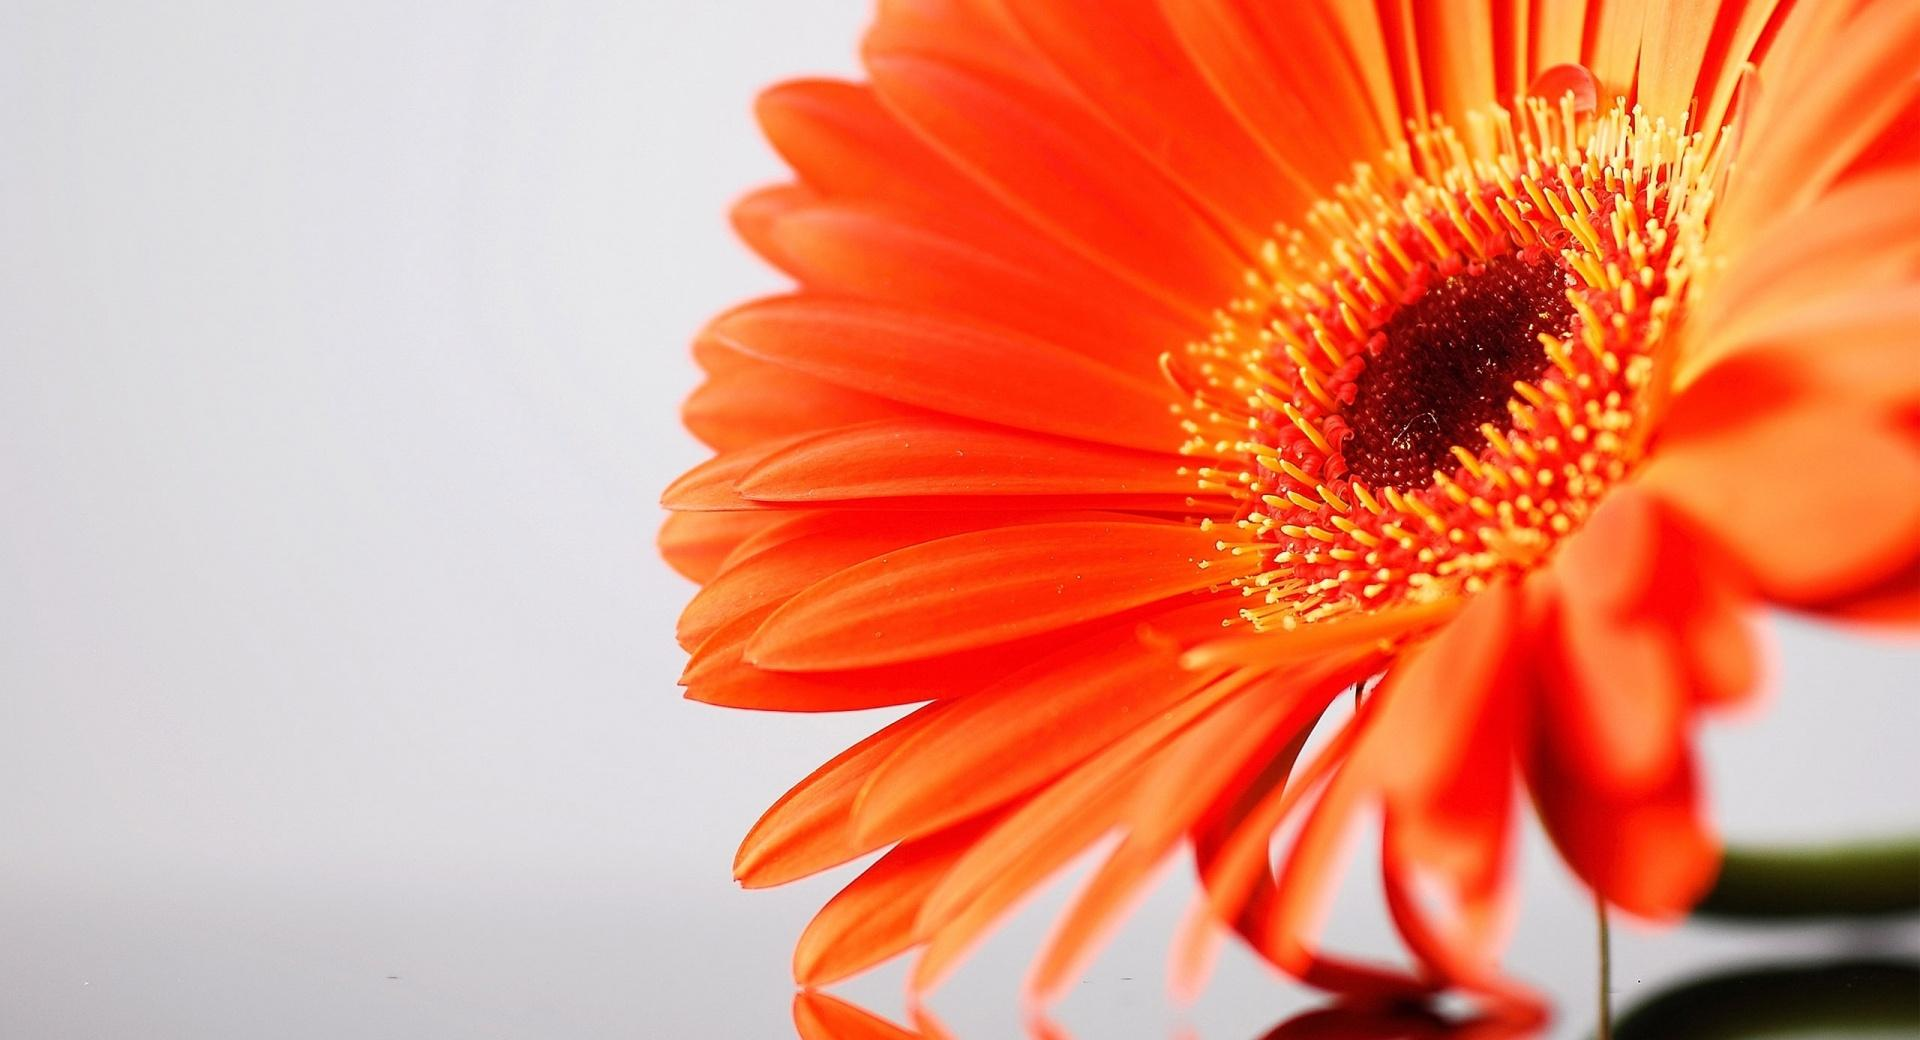 Orange Gerbera at 1600 x 1200 size wallpapers HD quality